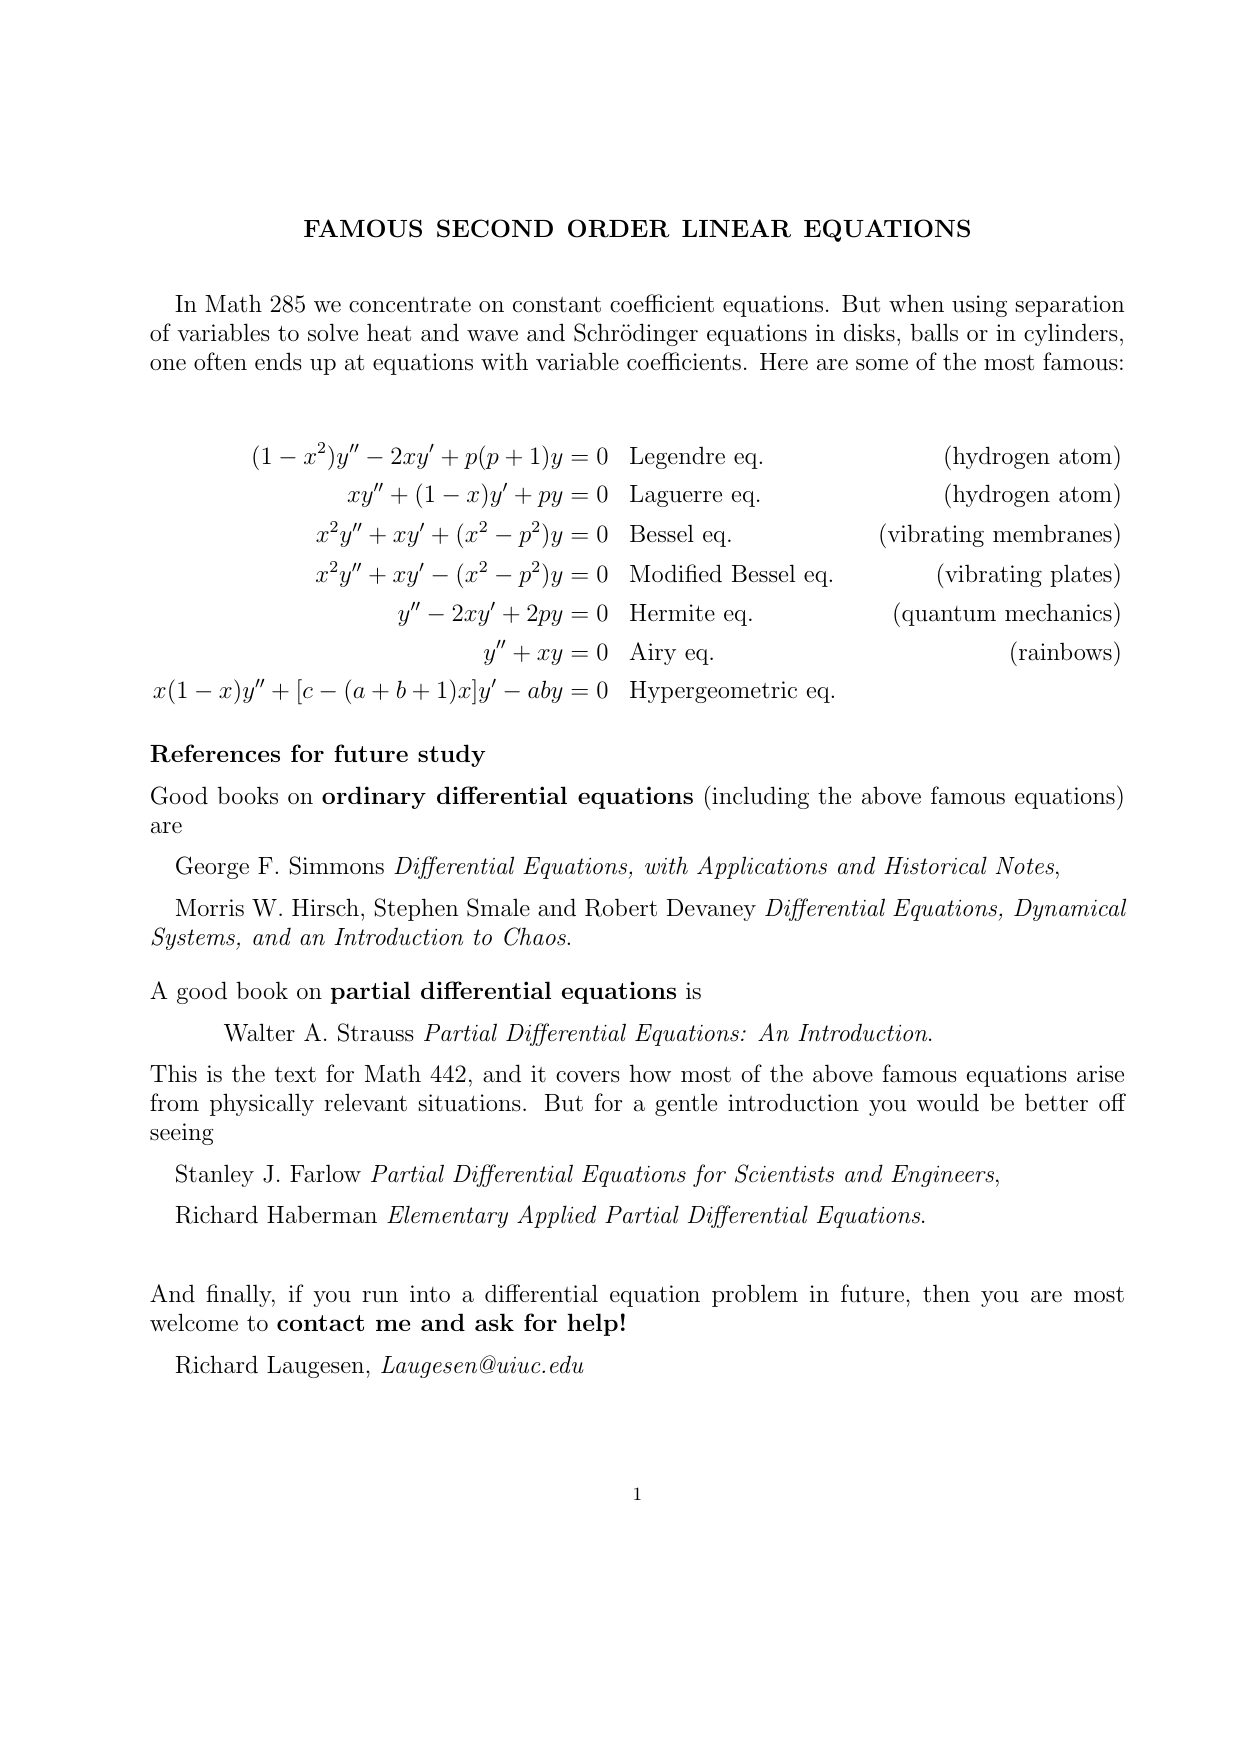 Famous differential equations, and references